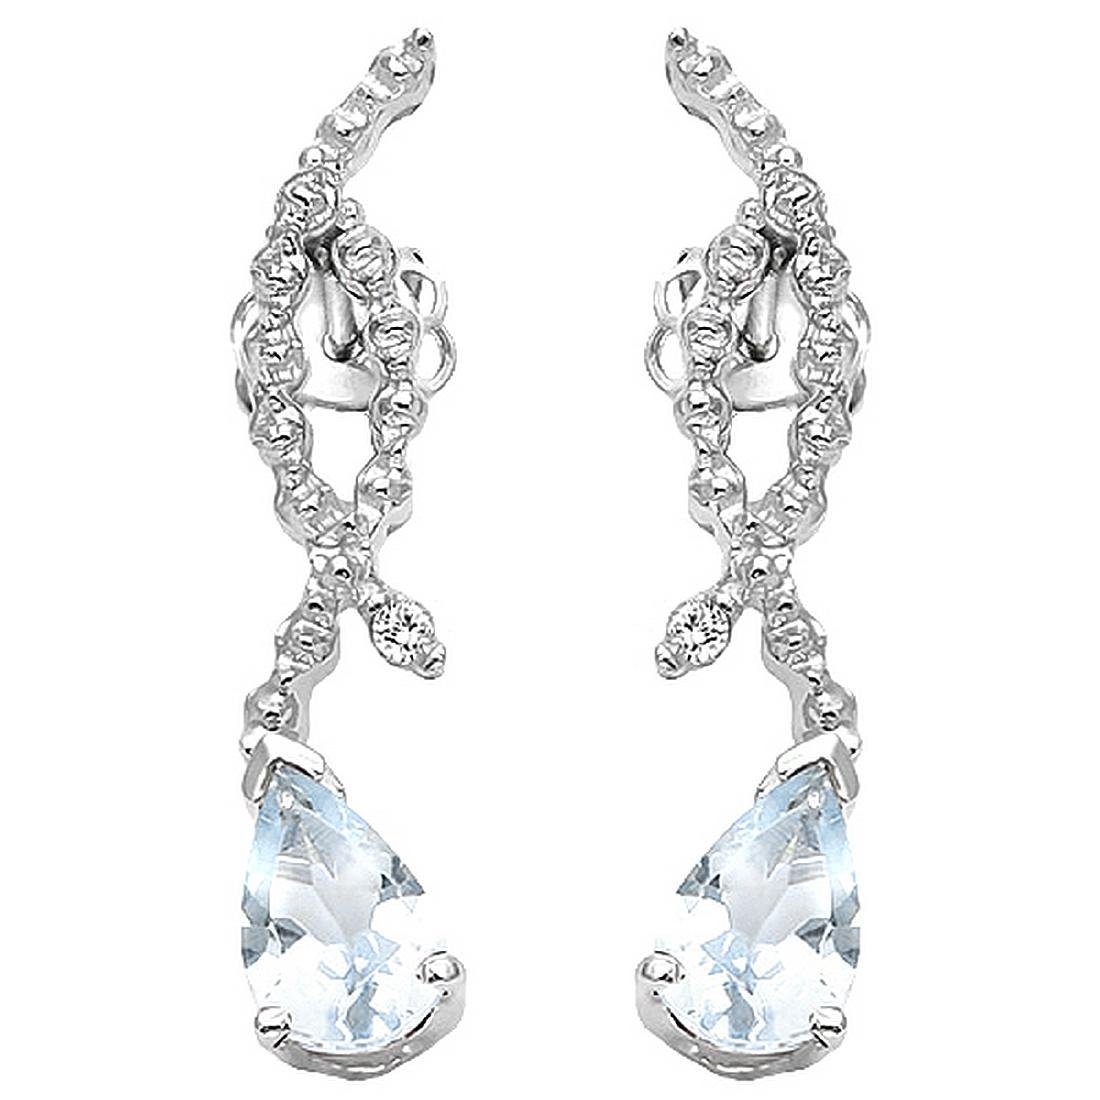 Aquamarine and Diamond Dangle Earrings in Sterling